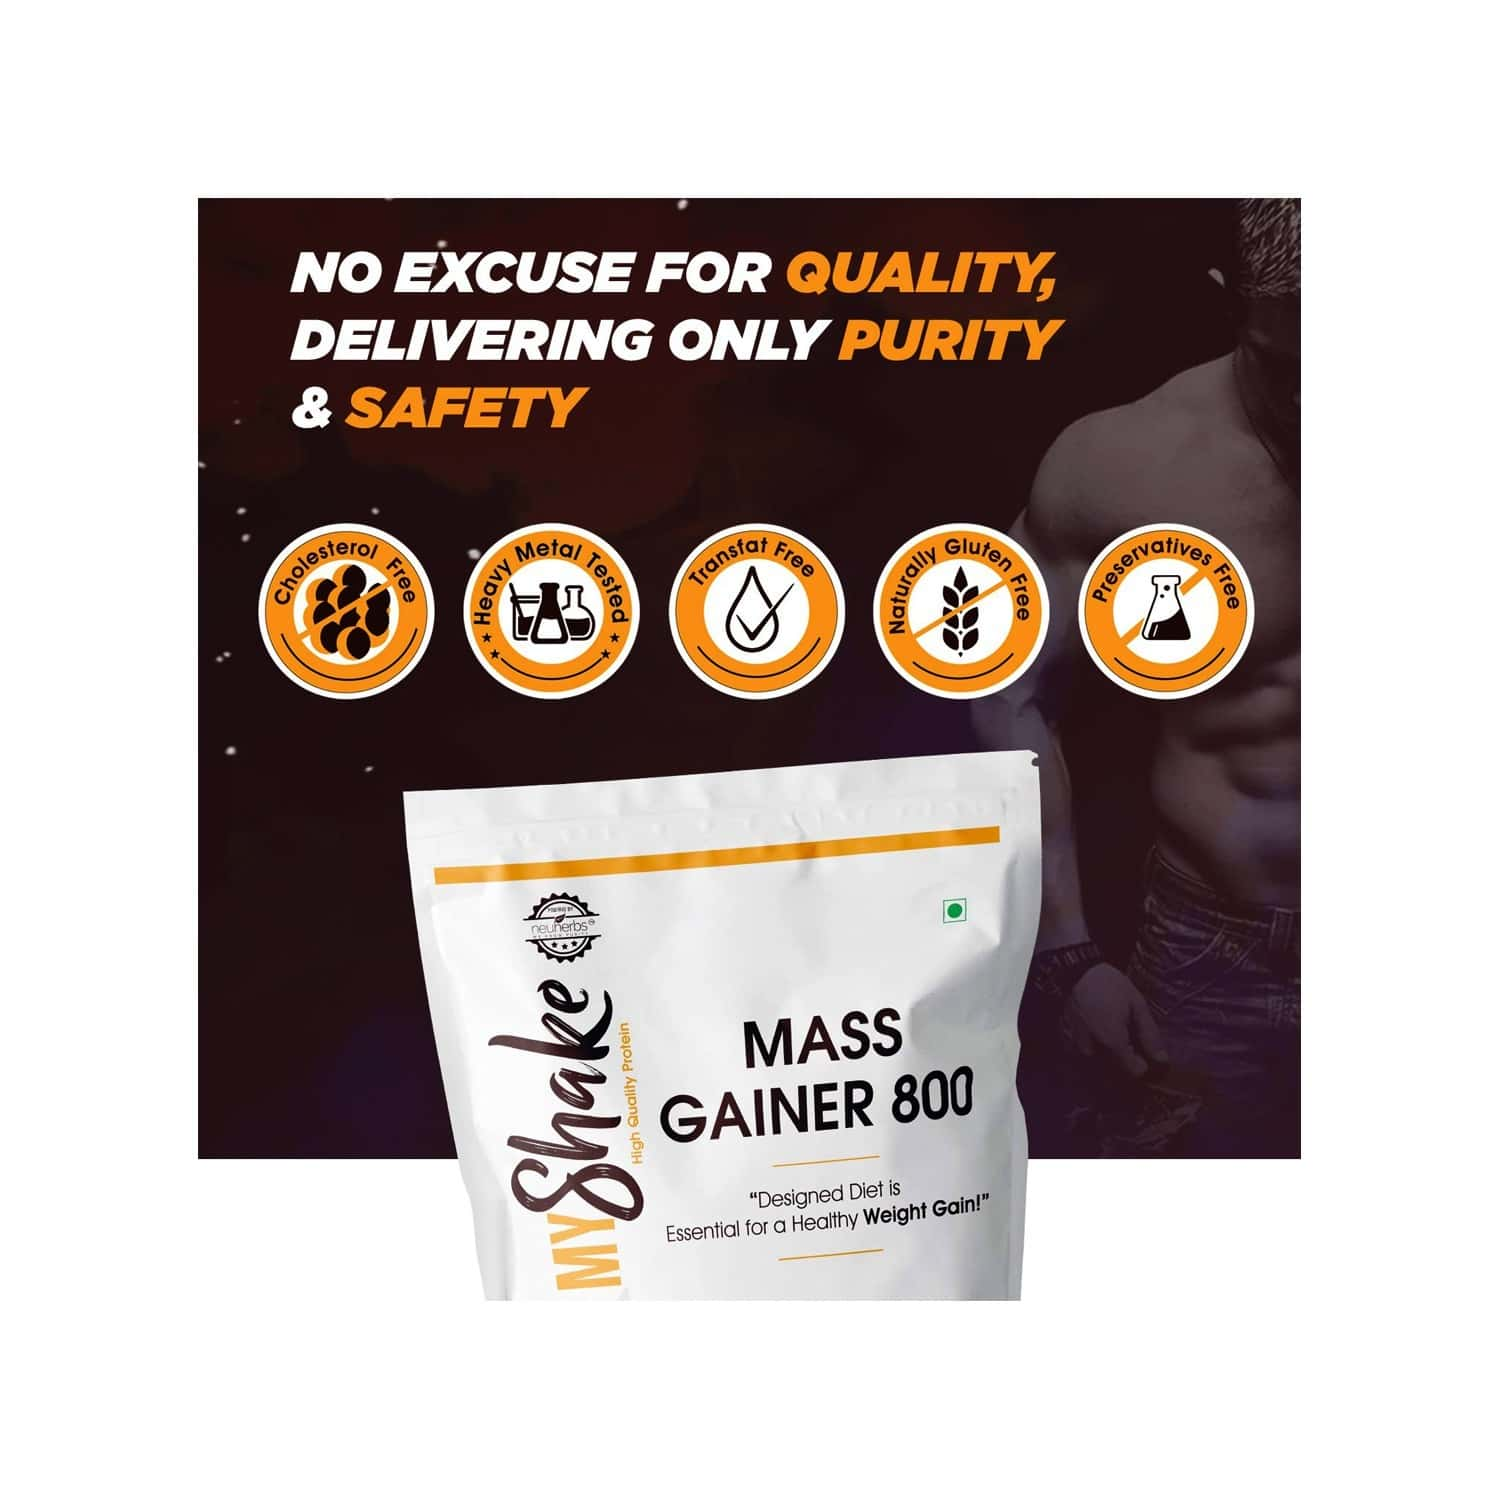 Neuherbs Myshake Mass Gainer 800 - Weight Gain With Protein, Fibers & Vitamins - 34 Grams Of Protein, 136 G Of Carbs - 1kg ( Chocolate Flavour )